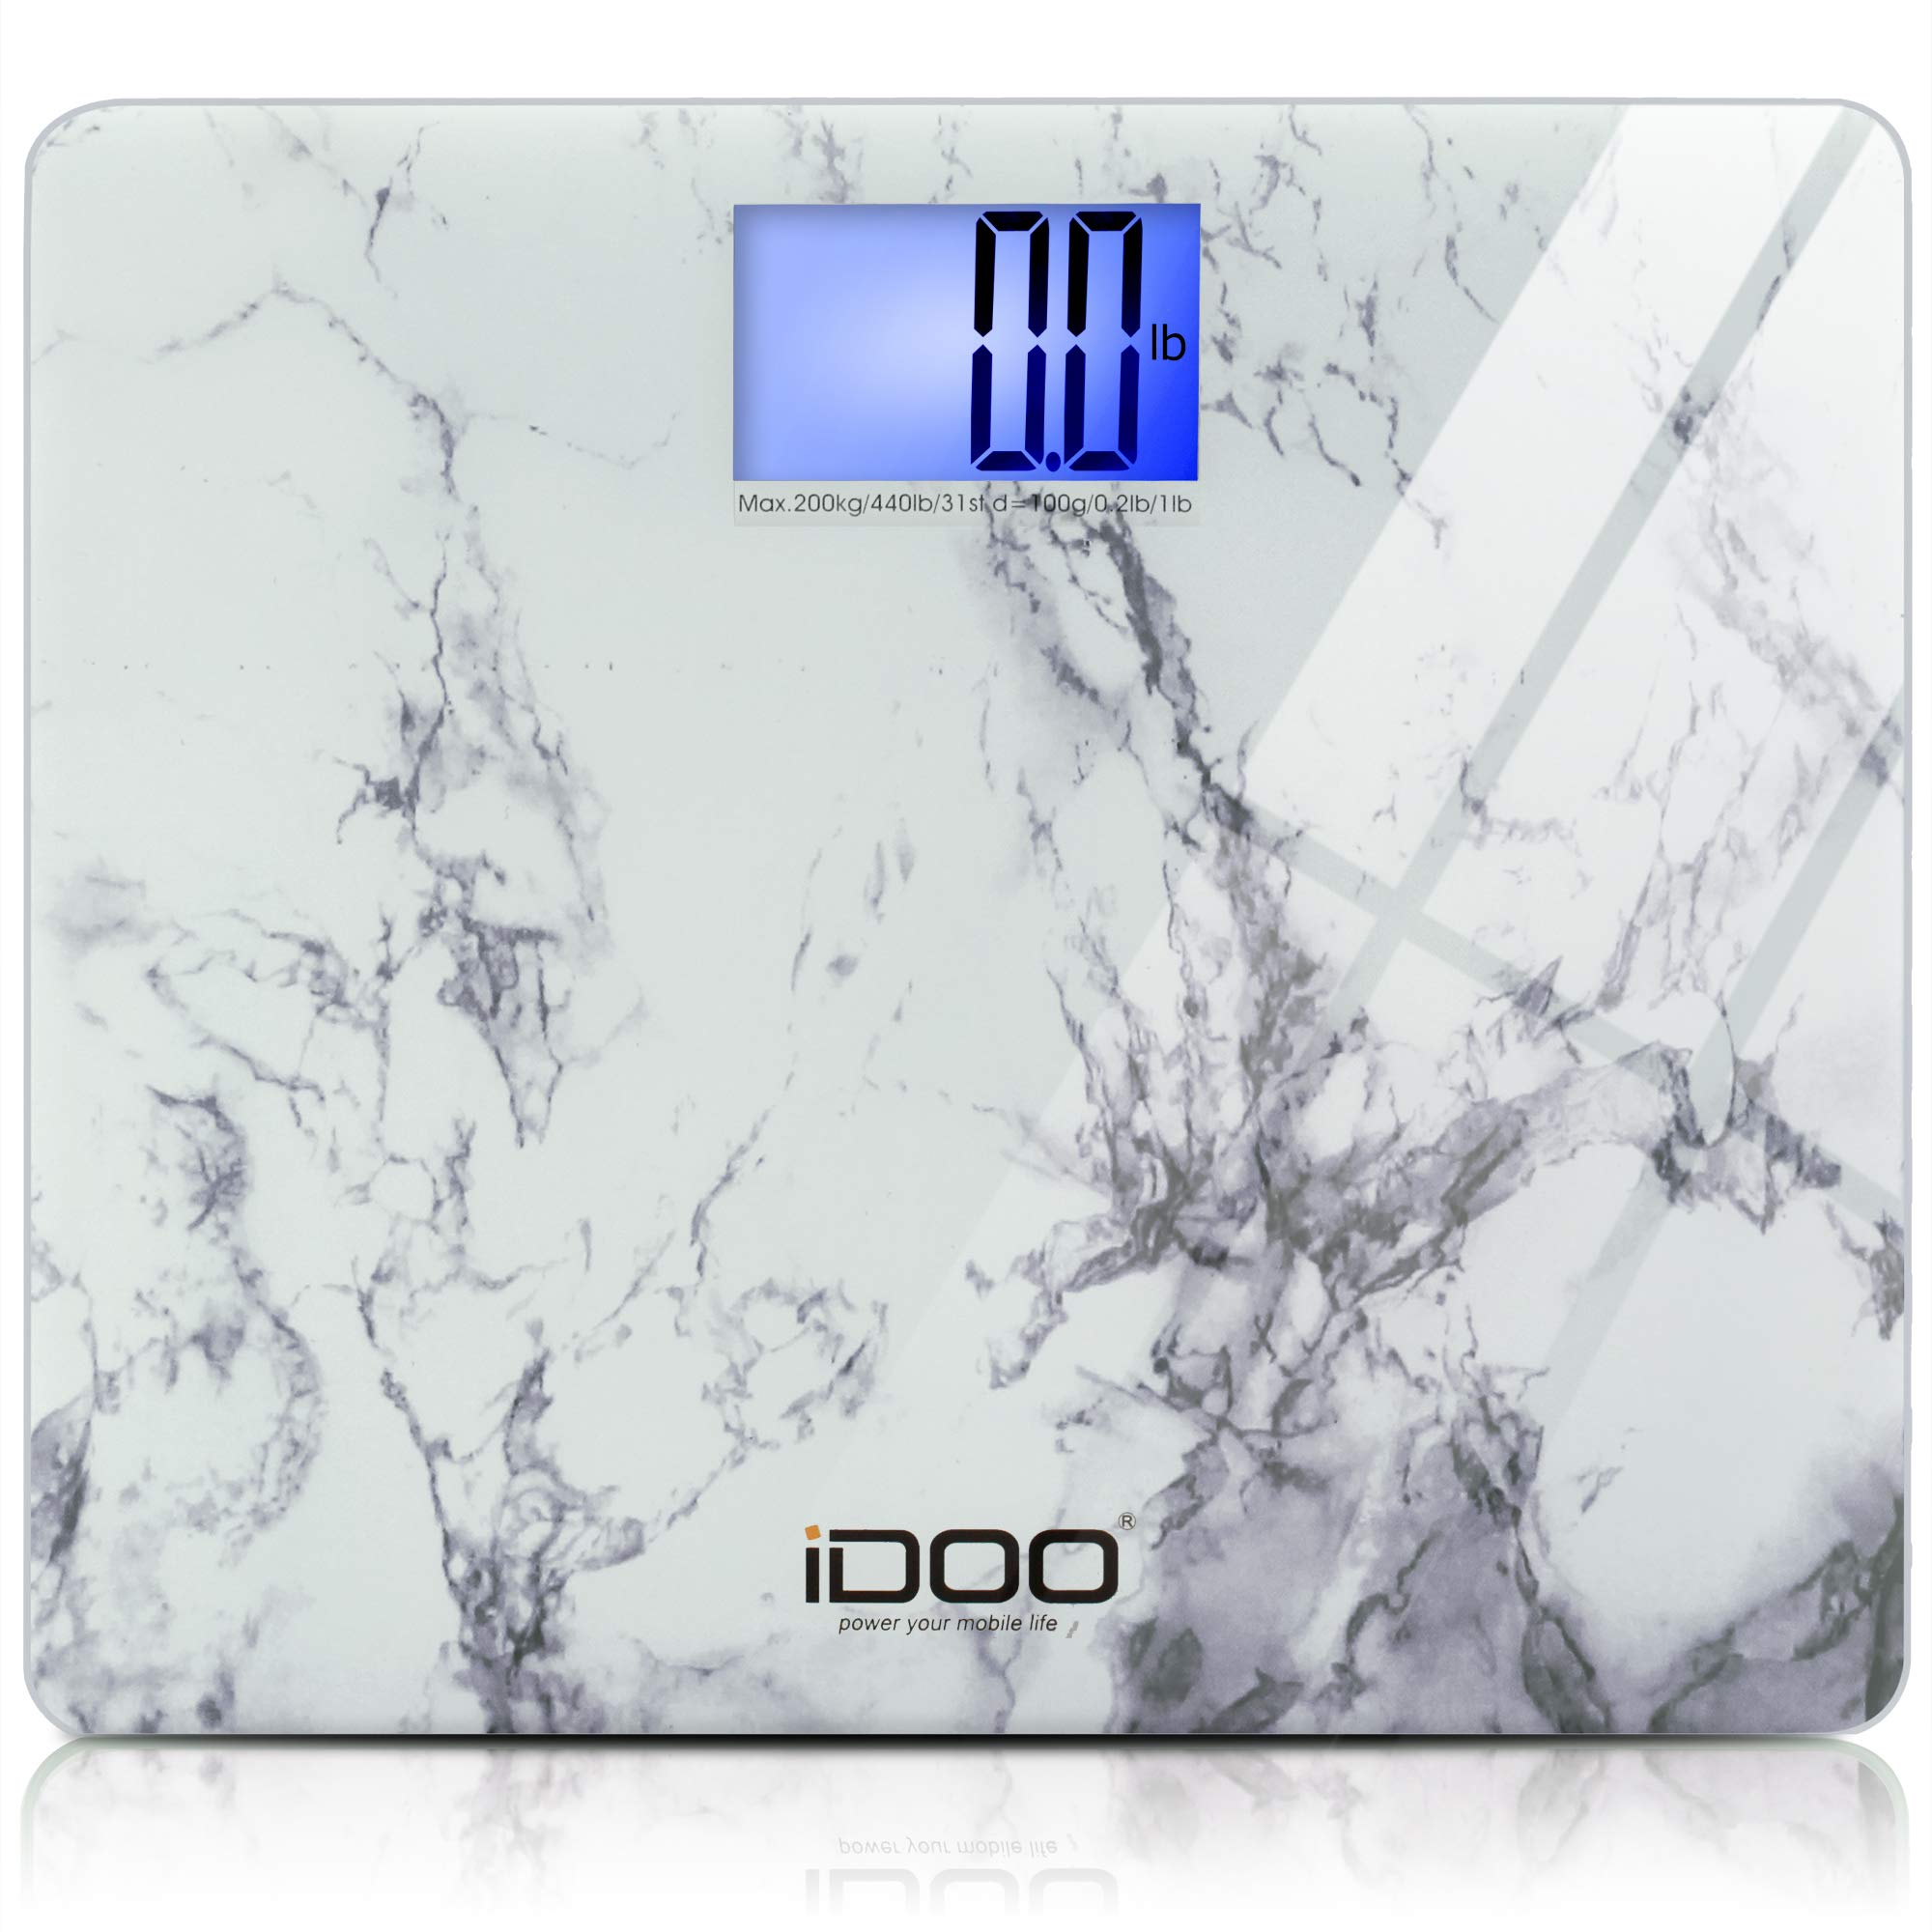 iDOO High Precision Digital Bathroom Weight Scale 440 Pound Capacity, Ultra Wide Heavy-duty Platform with Elegant Marble Design by iDOO